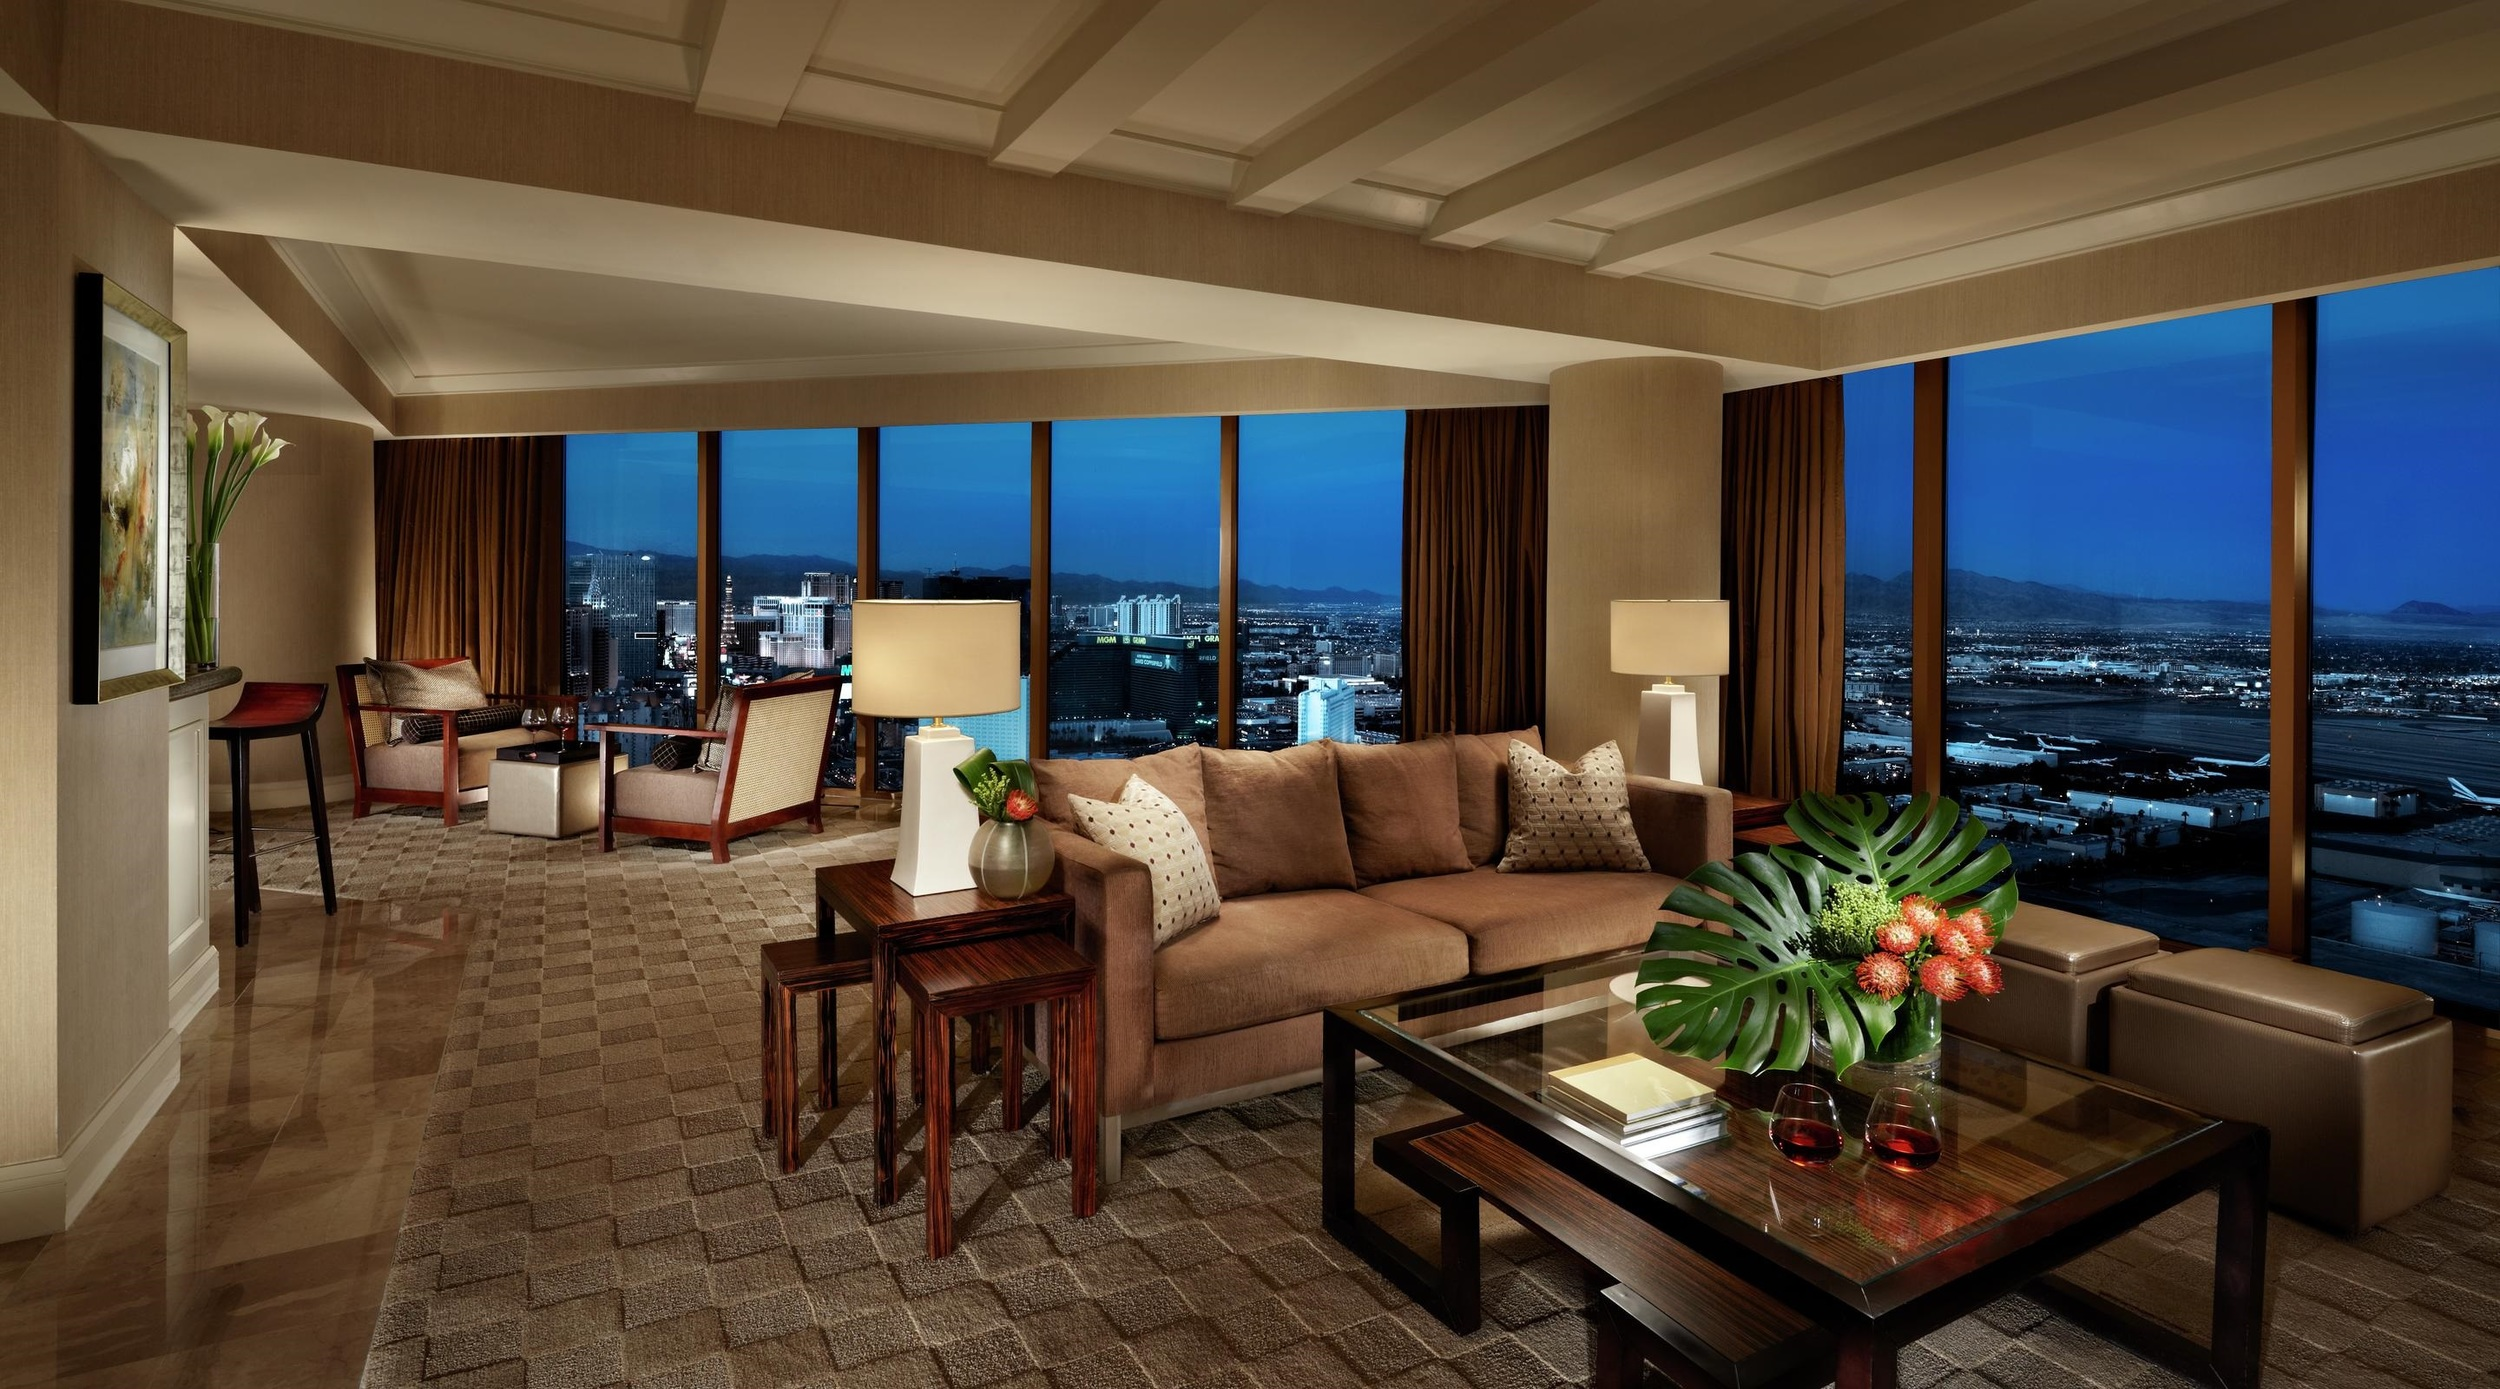 mandalay-bay-hotel-room-vista-suite-living-space.jpg